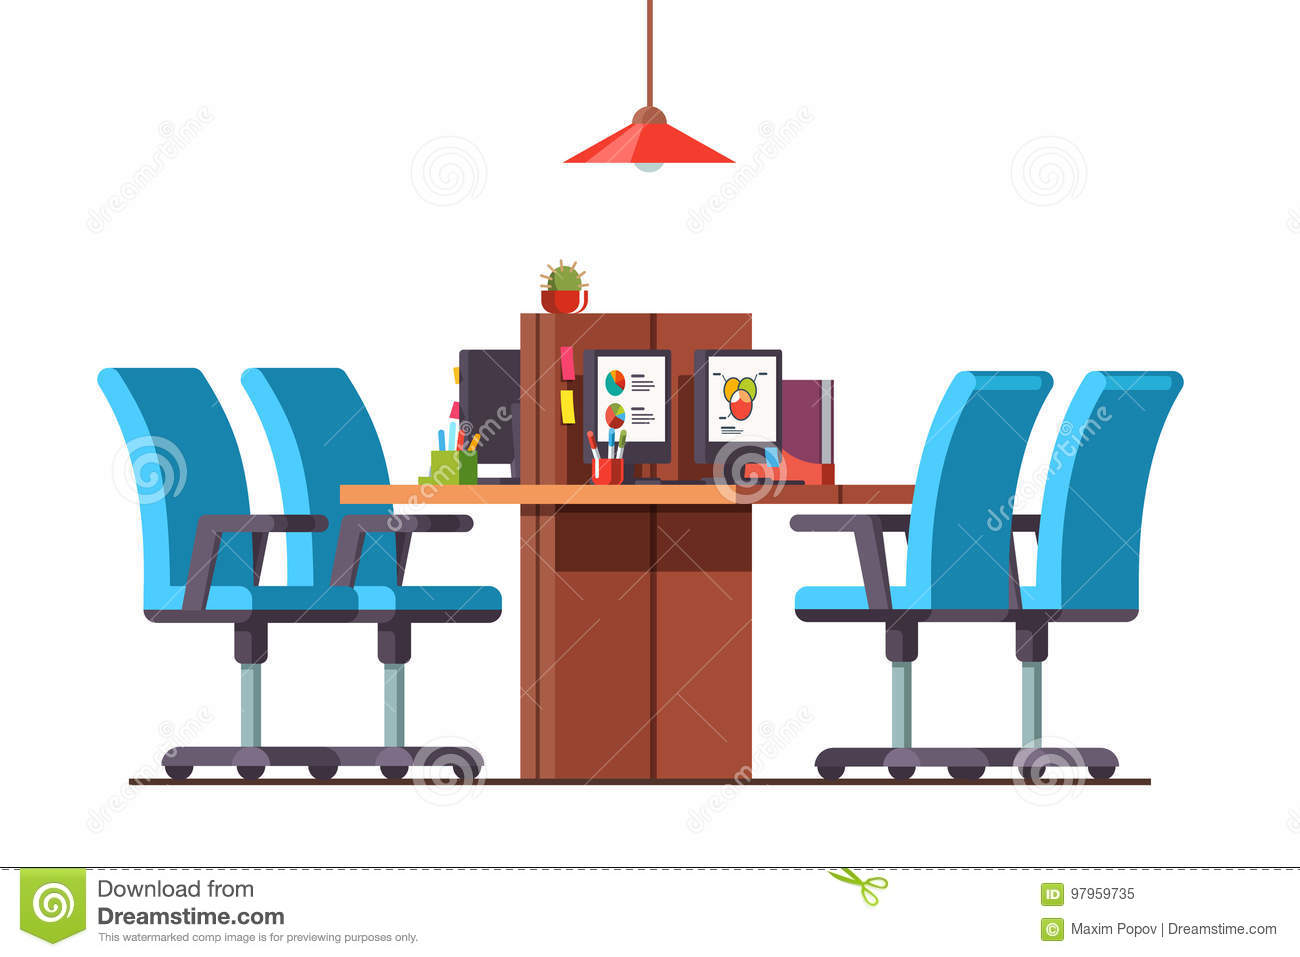 Minimalist Desk Chair Open Space Office With Combined Desks And Chairs Stock Vector